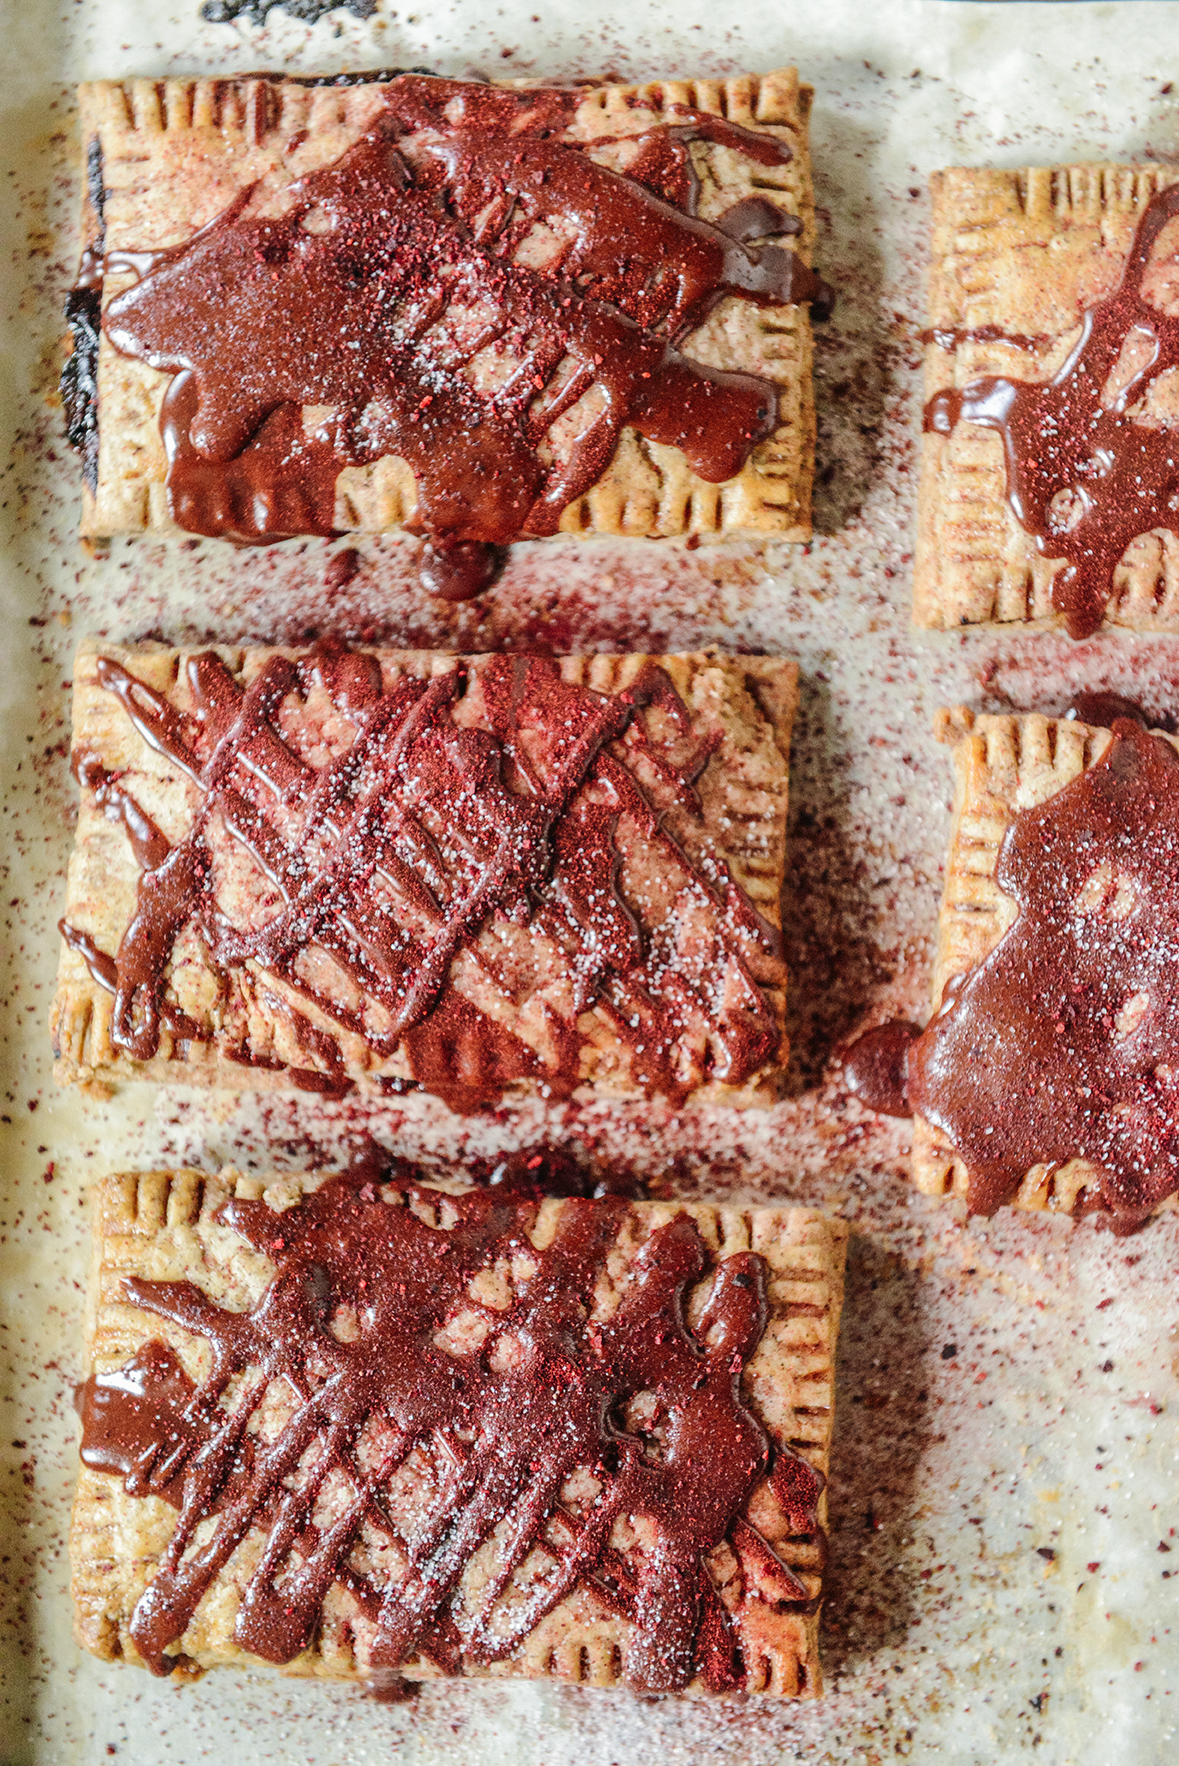 Homemade Cherry Pop Tart w/ Dark Chocolate Drizzle & Rose Petals // www.WithTheGrains.com